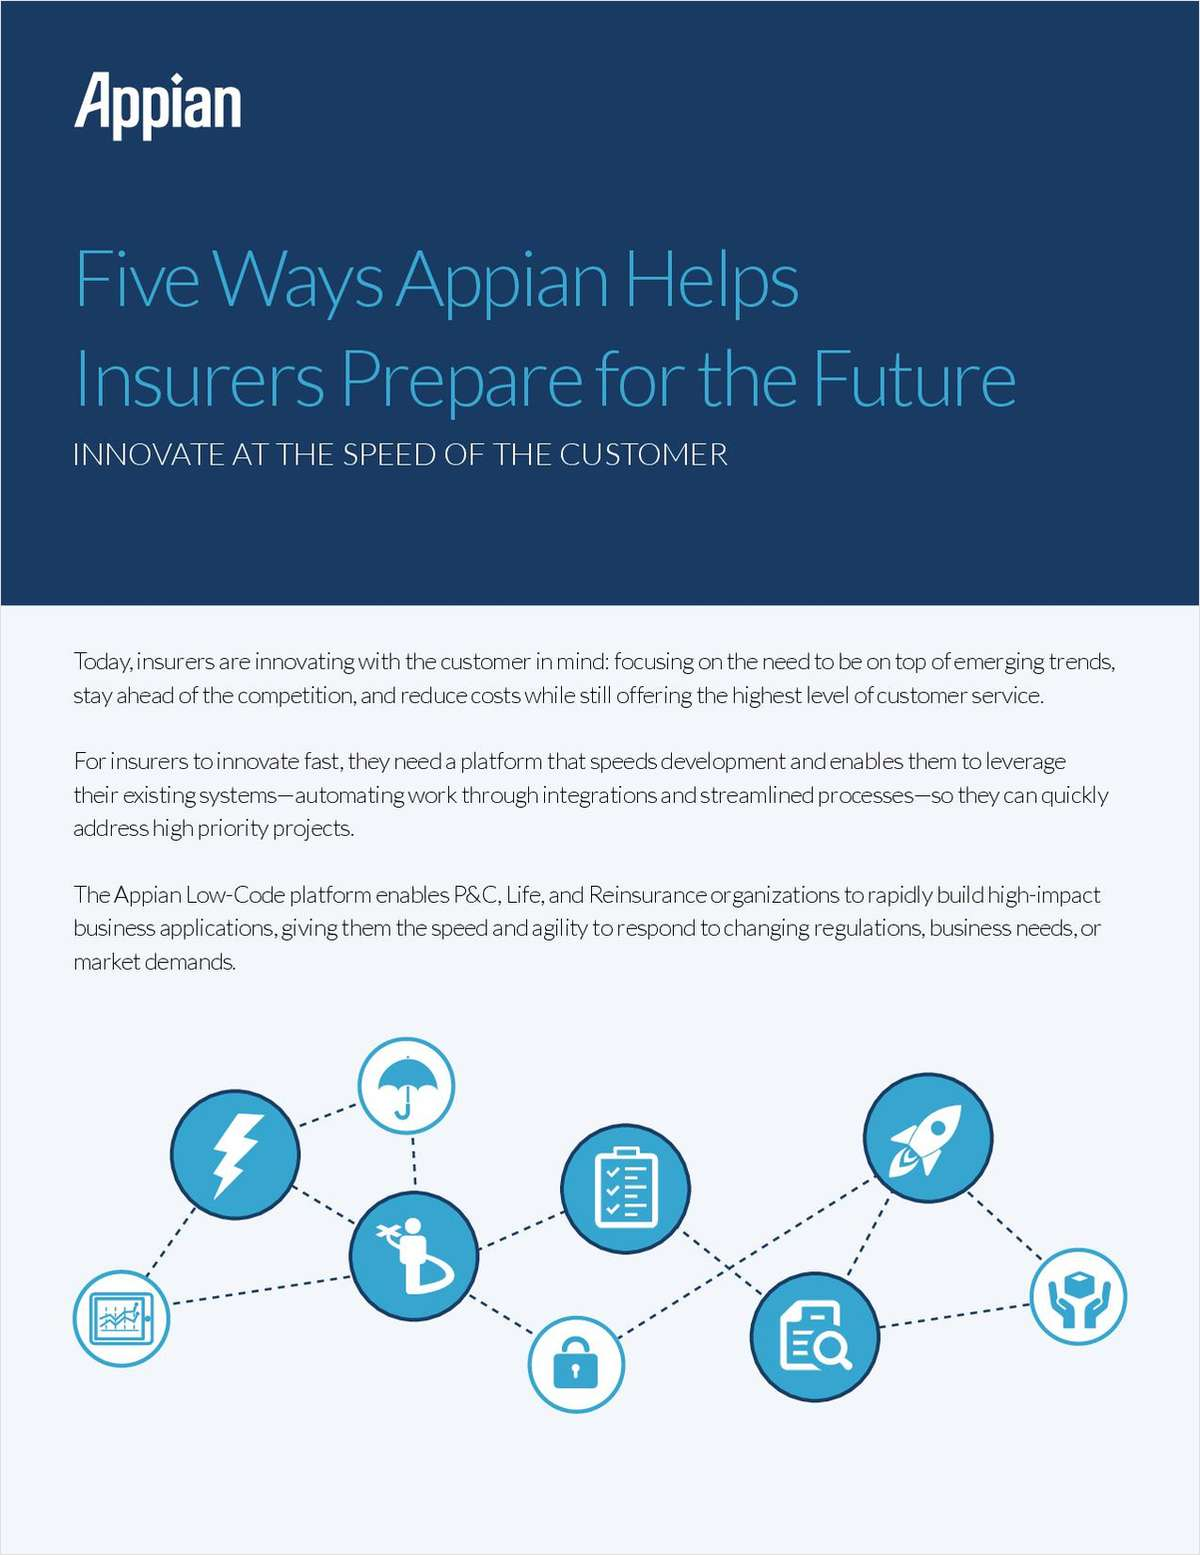 Five Ways Appian Helps Insurers Prepare for the Future